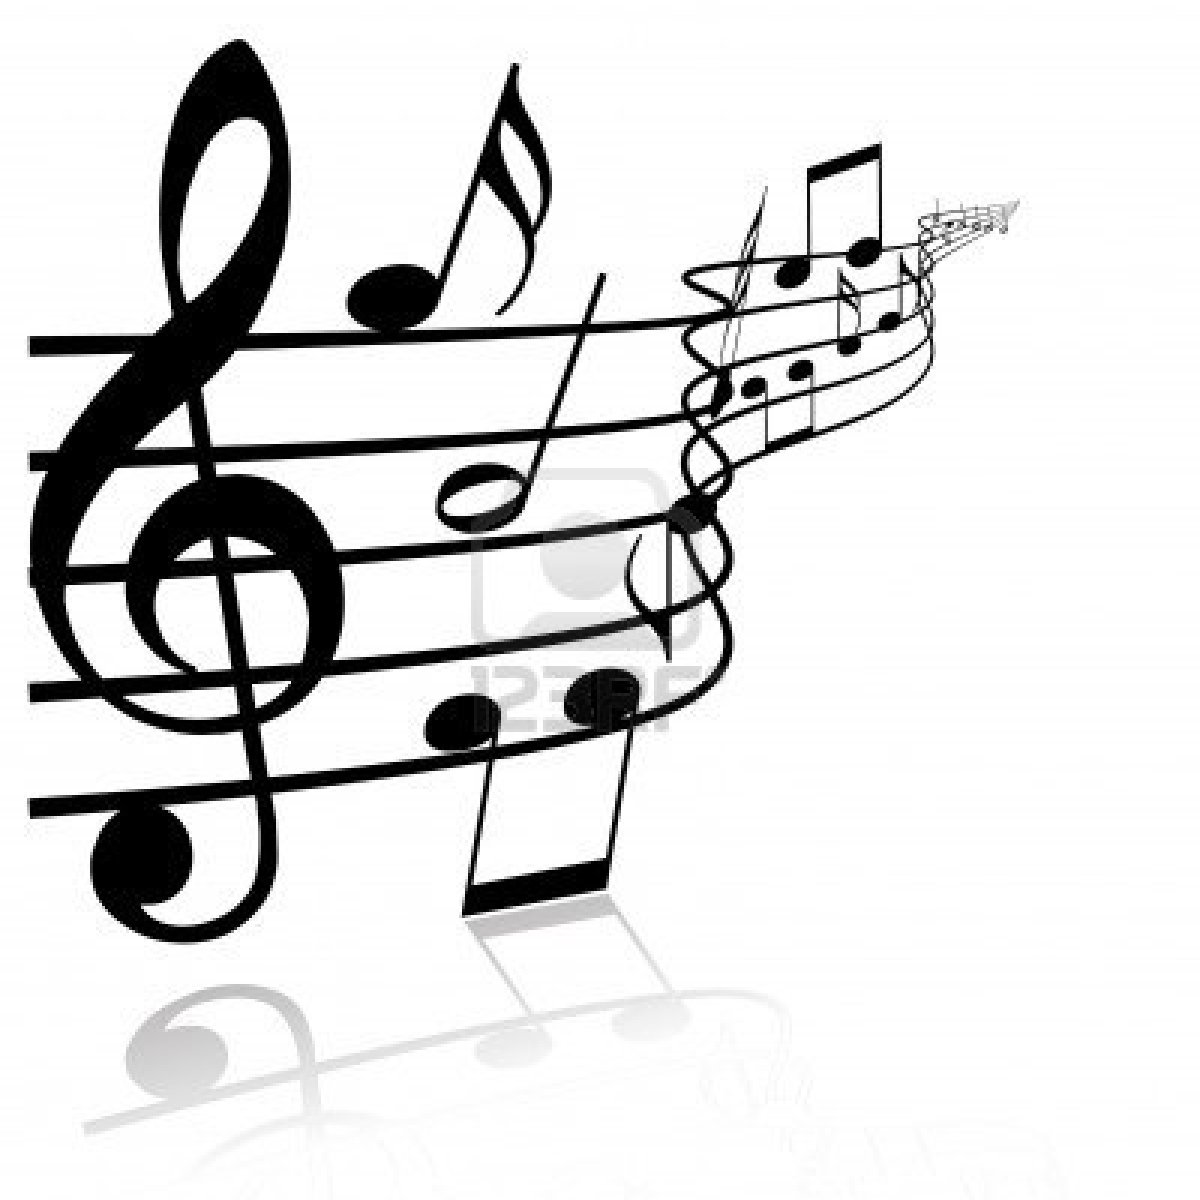 Musical music notes clip art and image 3